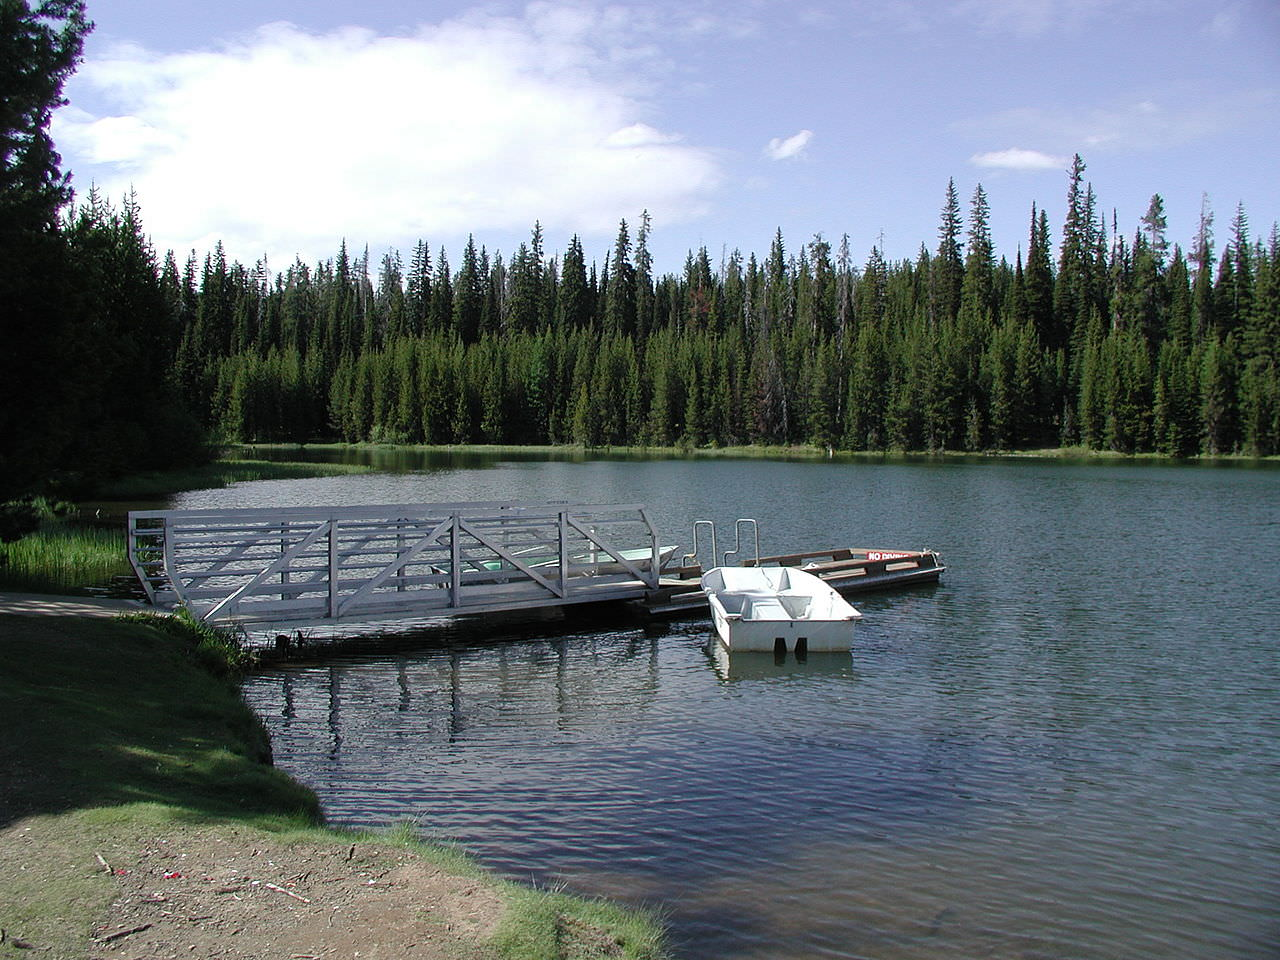 photo: A metal and wooden dock and a small white boat floating beside in shallow water. Photo by USFS.